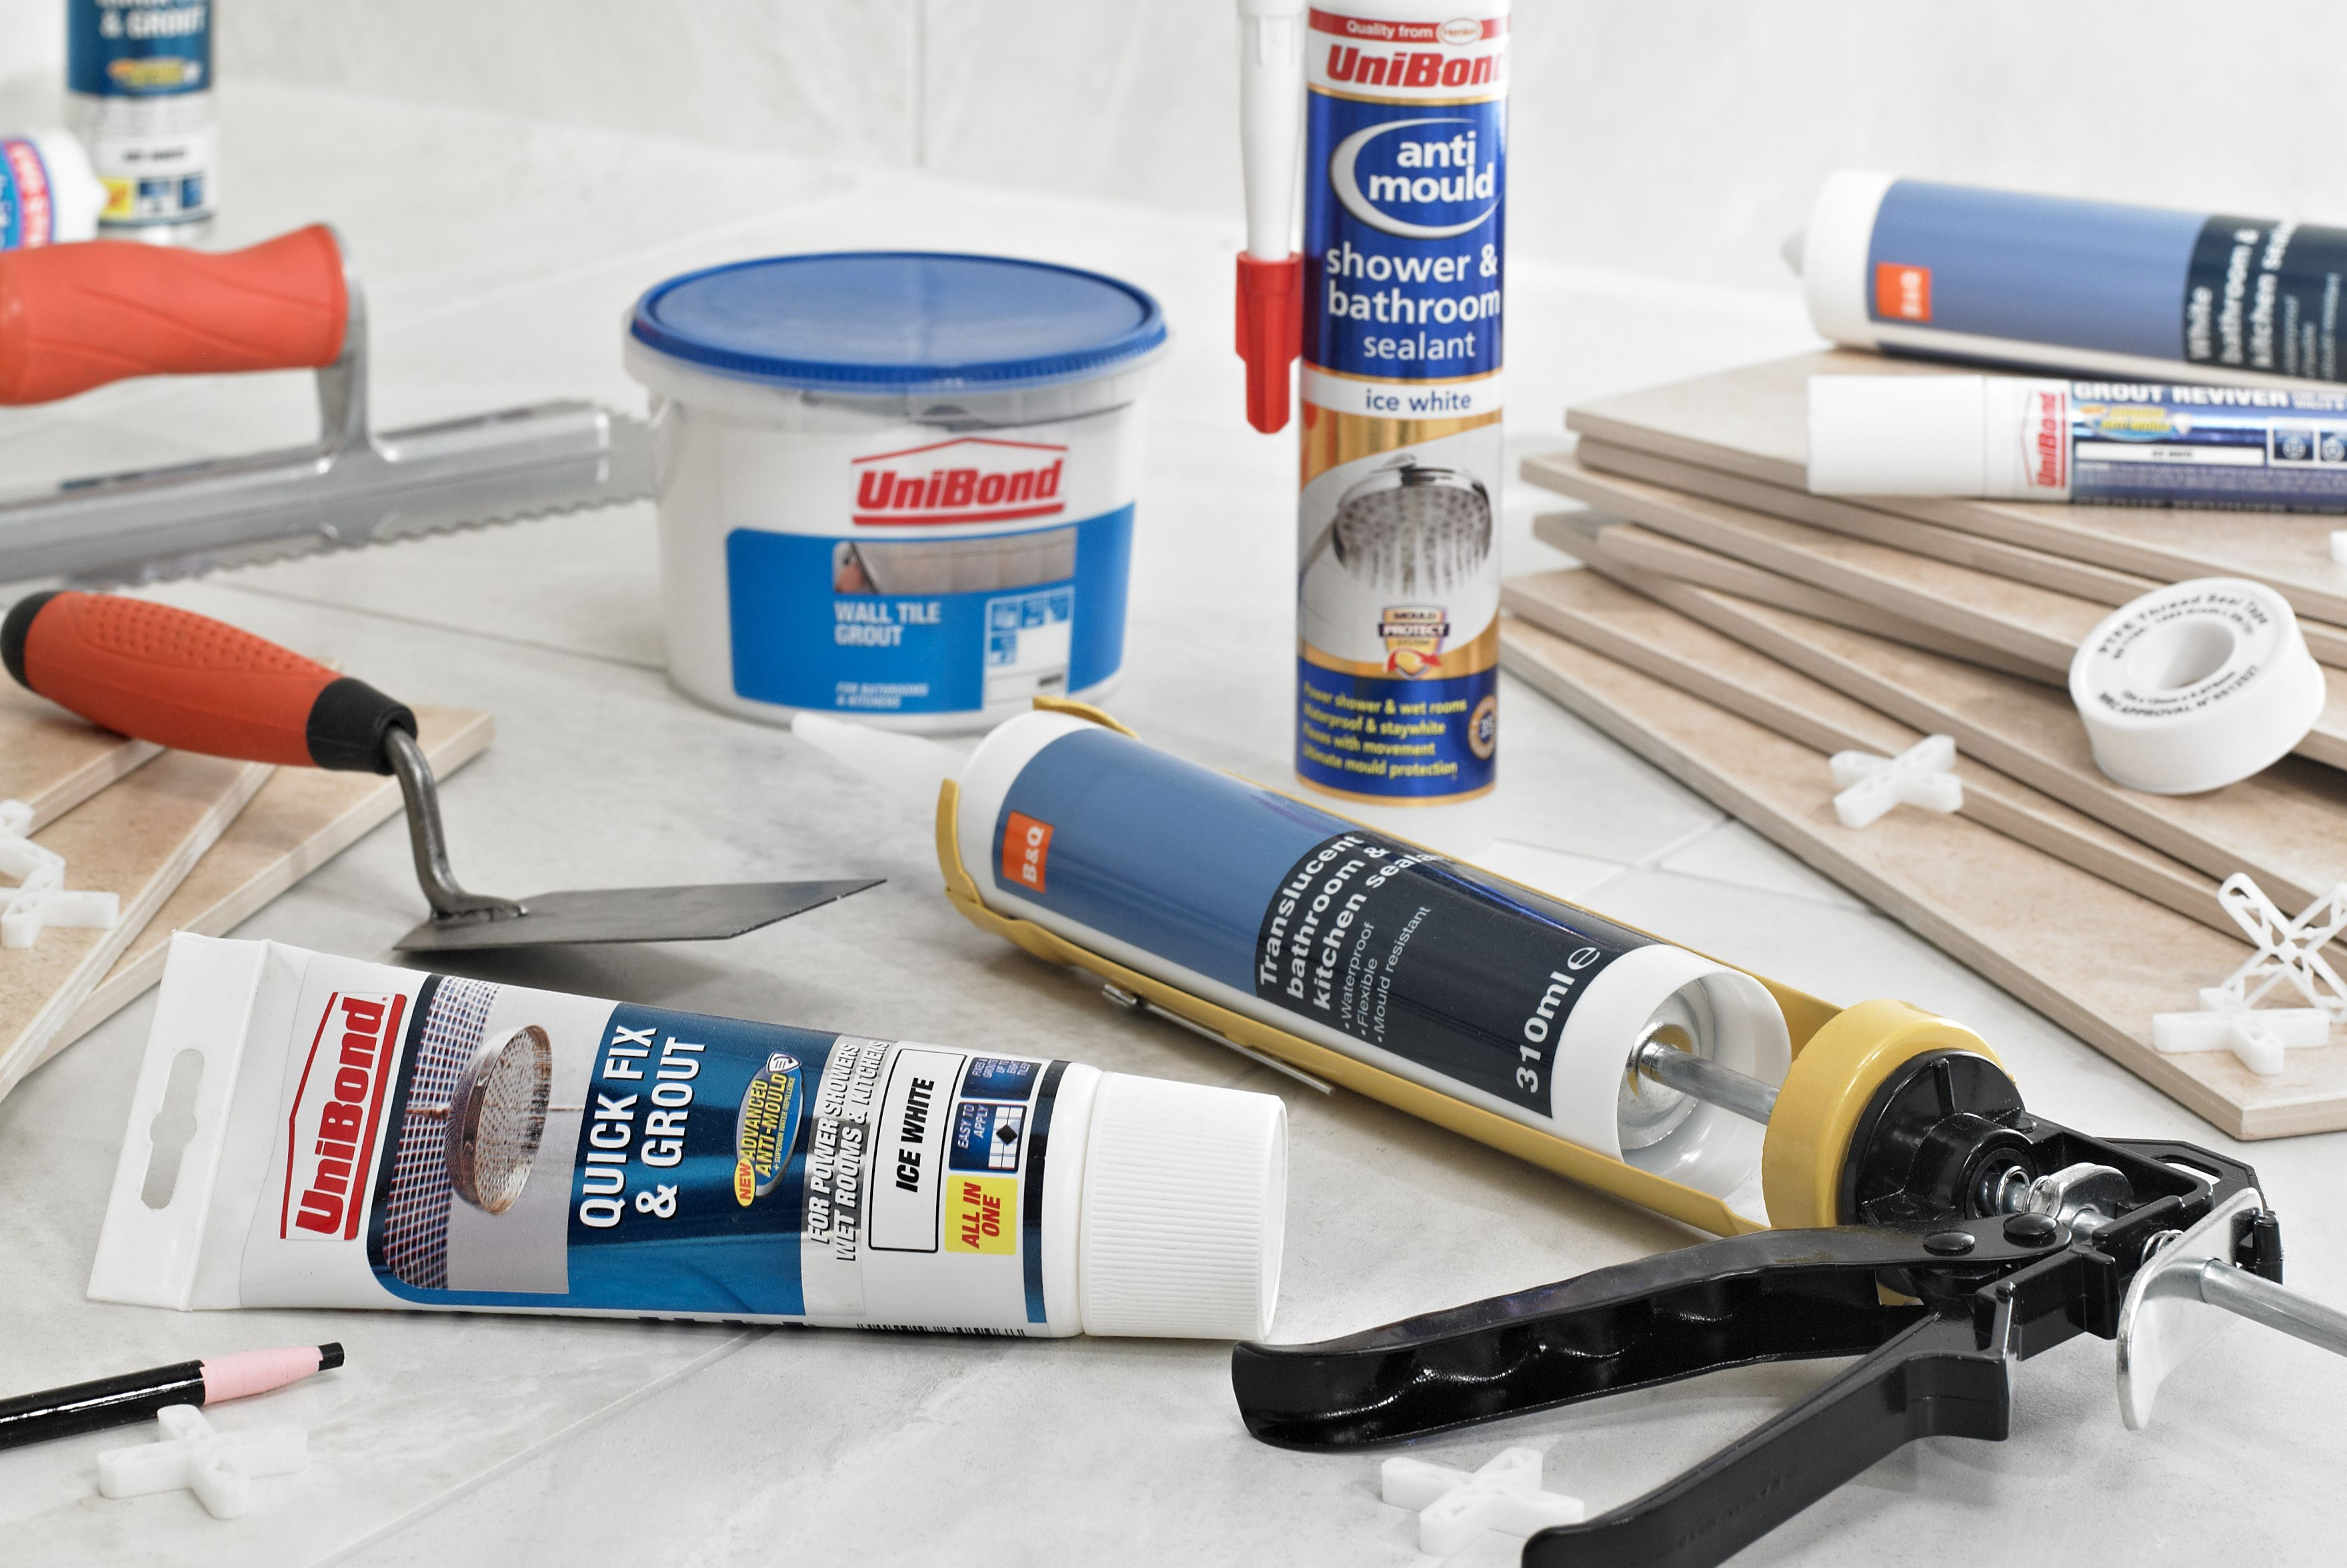 Adhesives sealants buying guide help ideas diy at b q B q bathroom design service